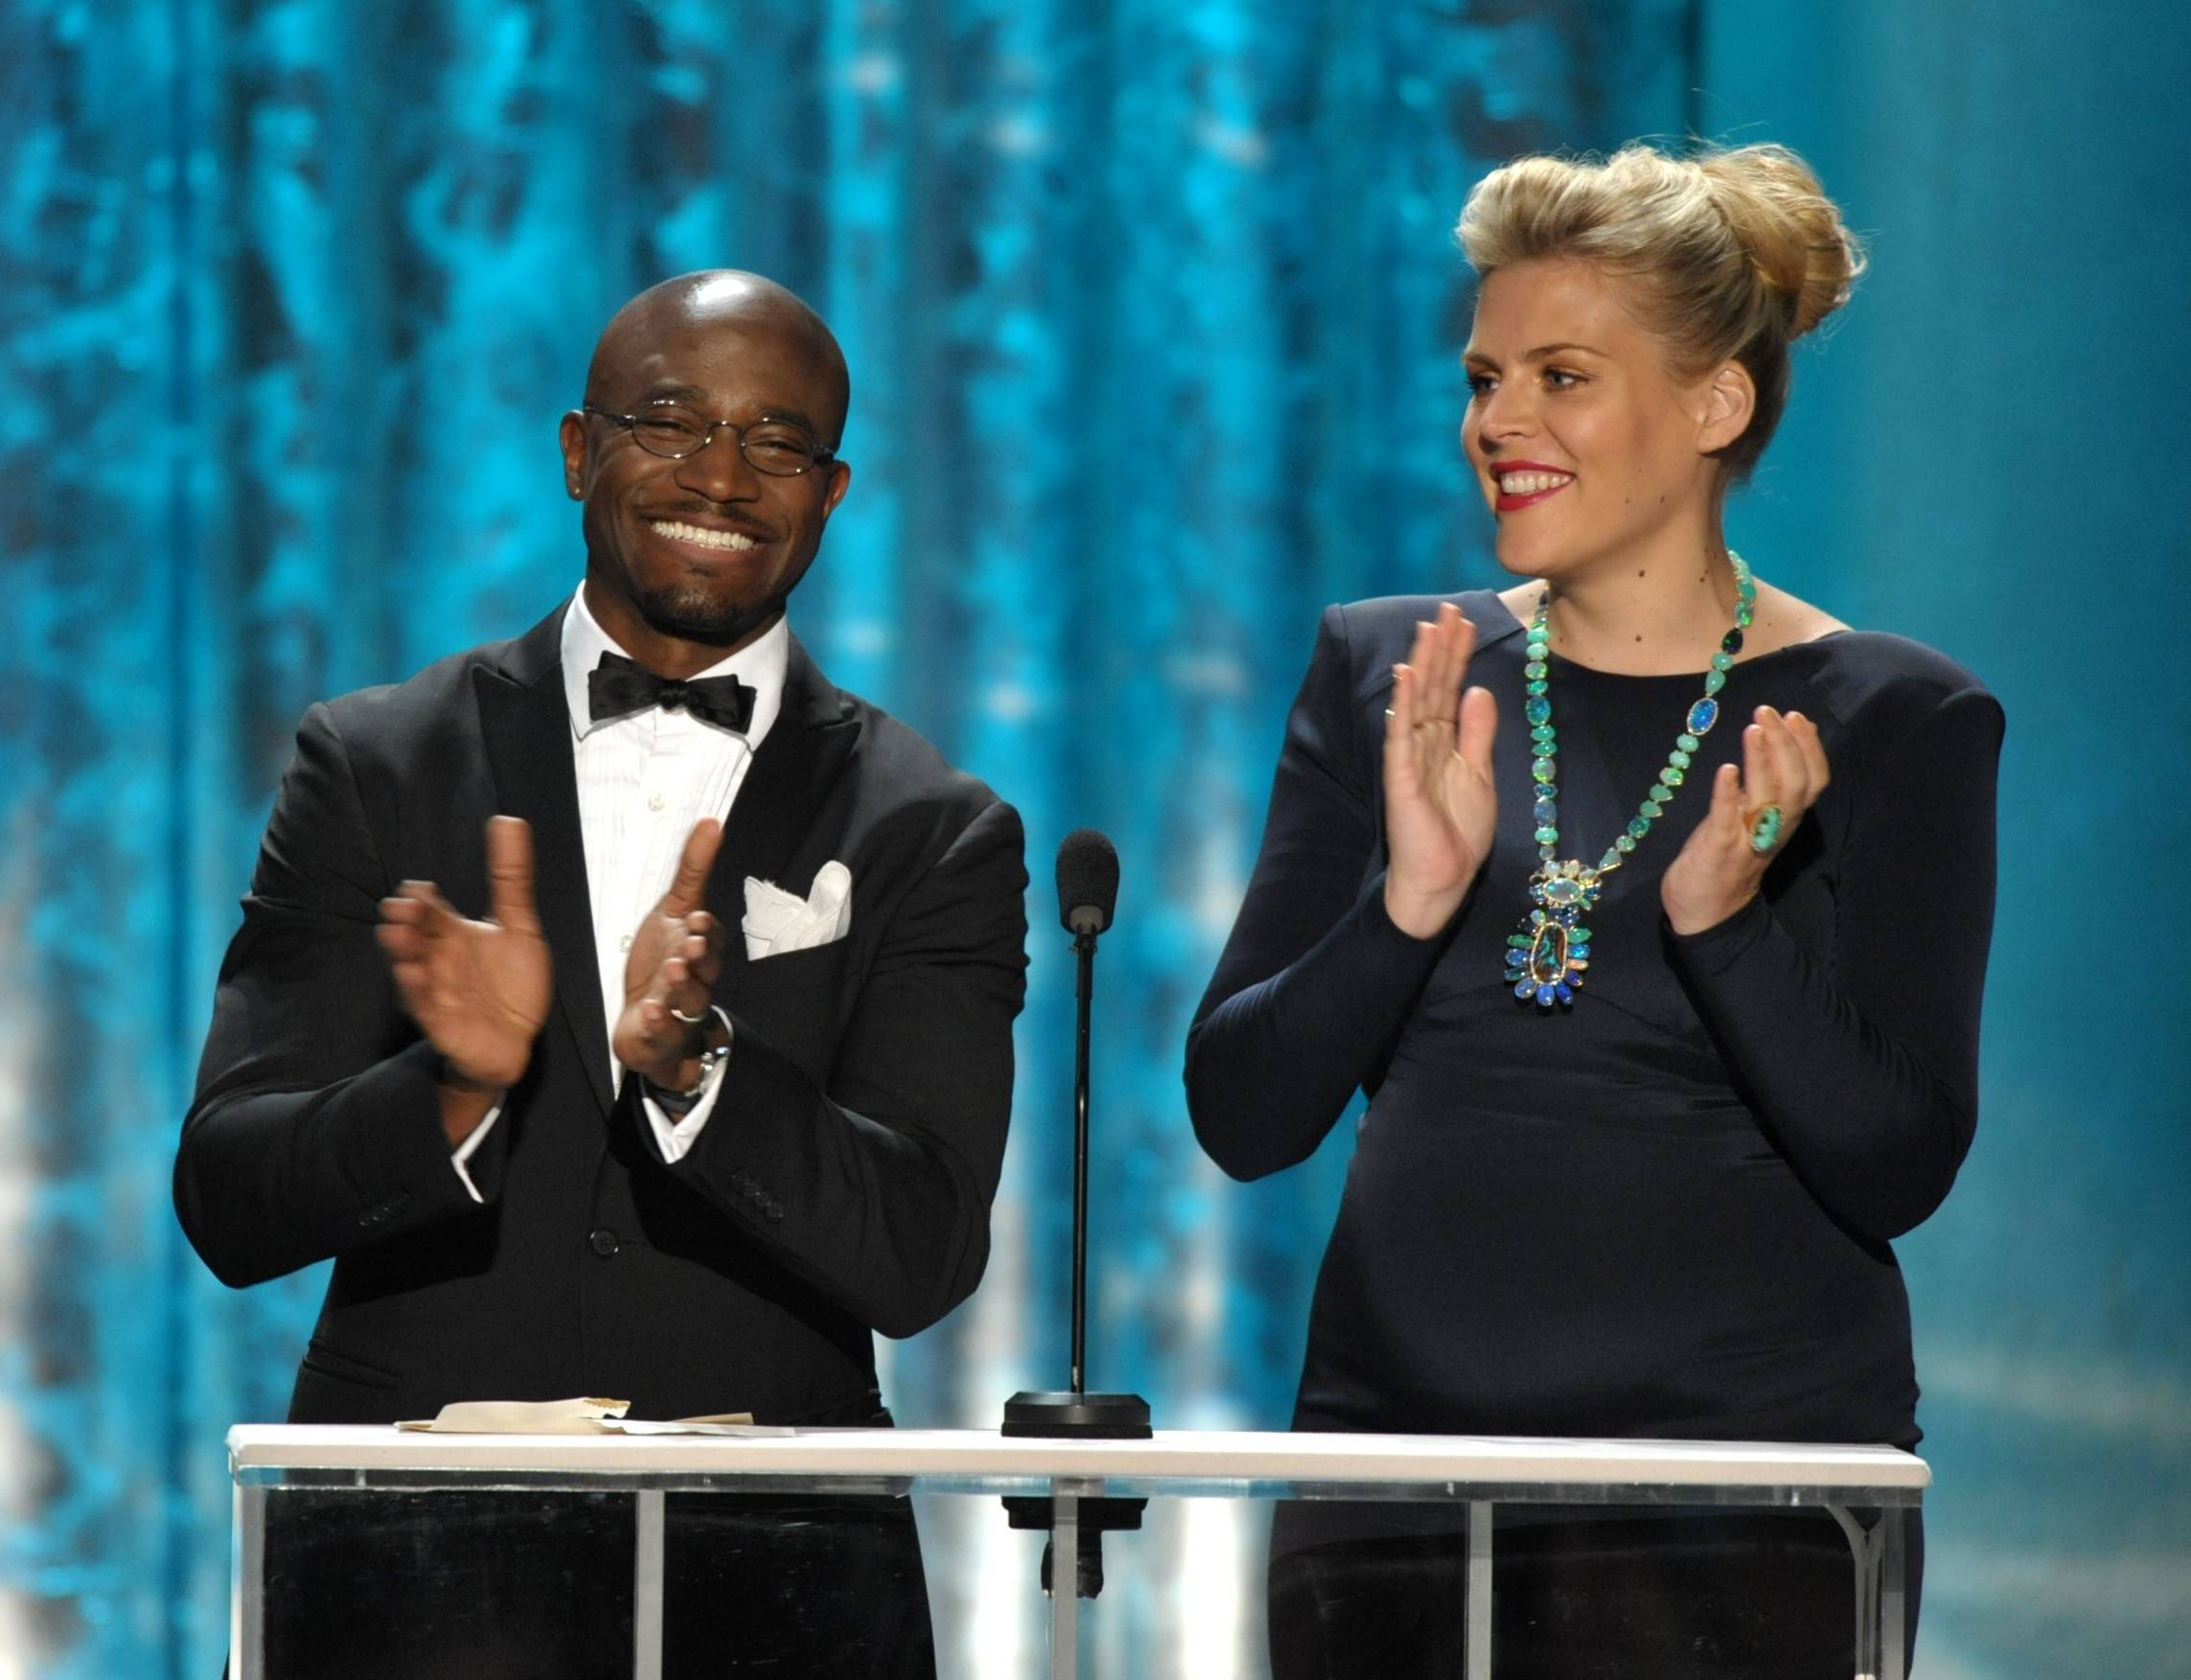 "For fans of ""Cougar Town"" this photo is extra special as Busy Phillips' character Laurie is kind of obsessed with Taye Diggs. And here they are. Presenting together."